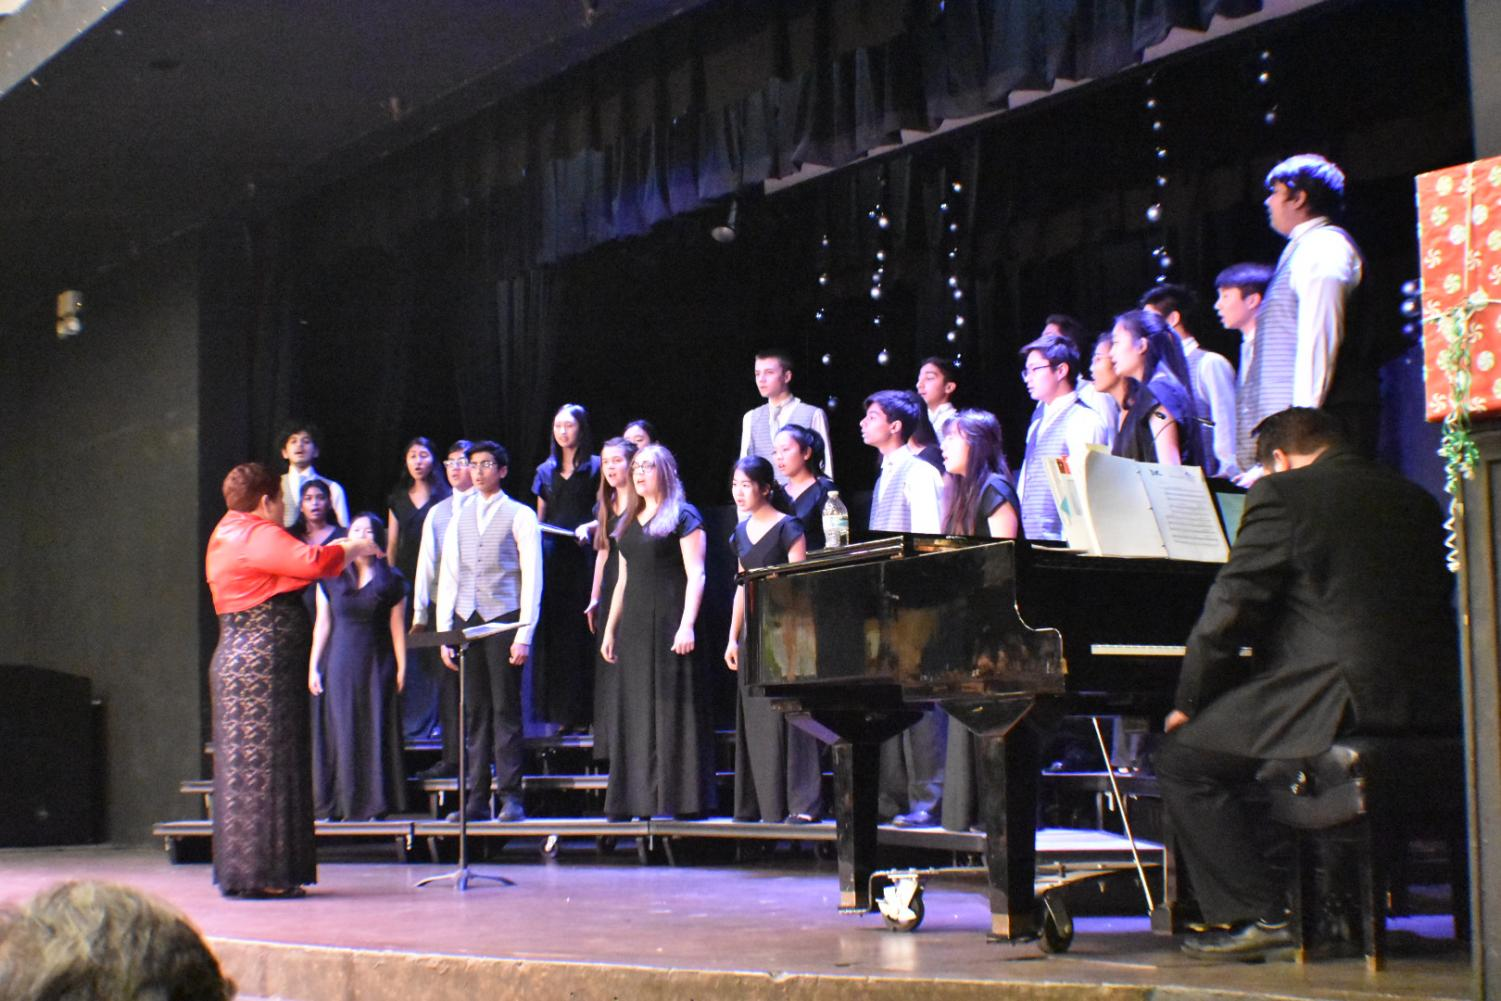 Part of performing during a choir concert involves paying close attention to Ms. Olsen's conducting and knowing when to enter into the song.